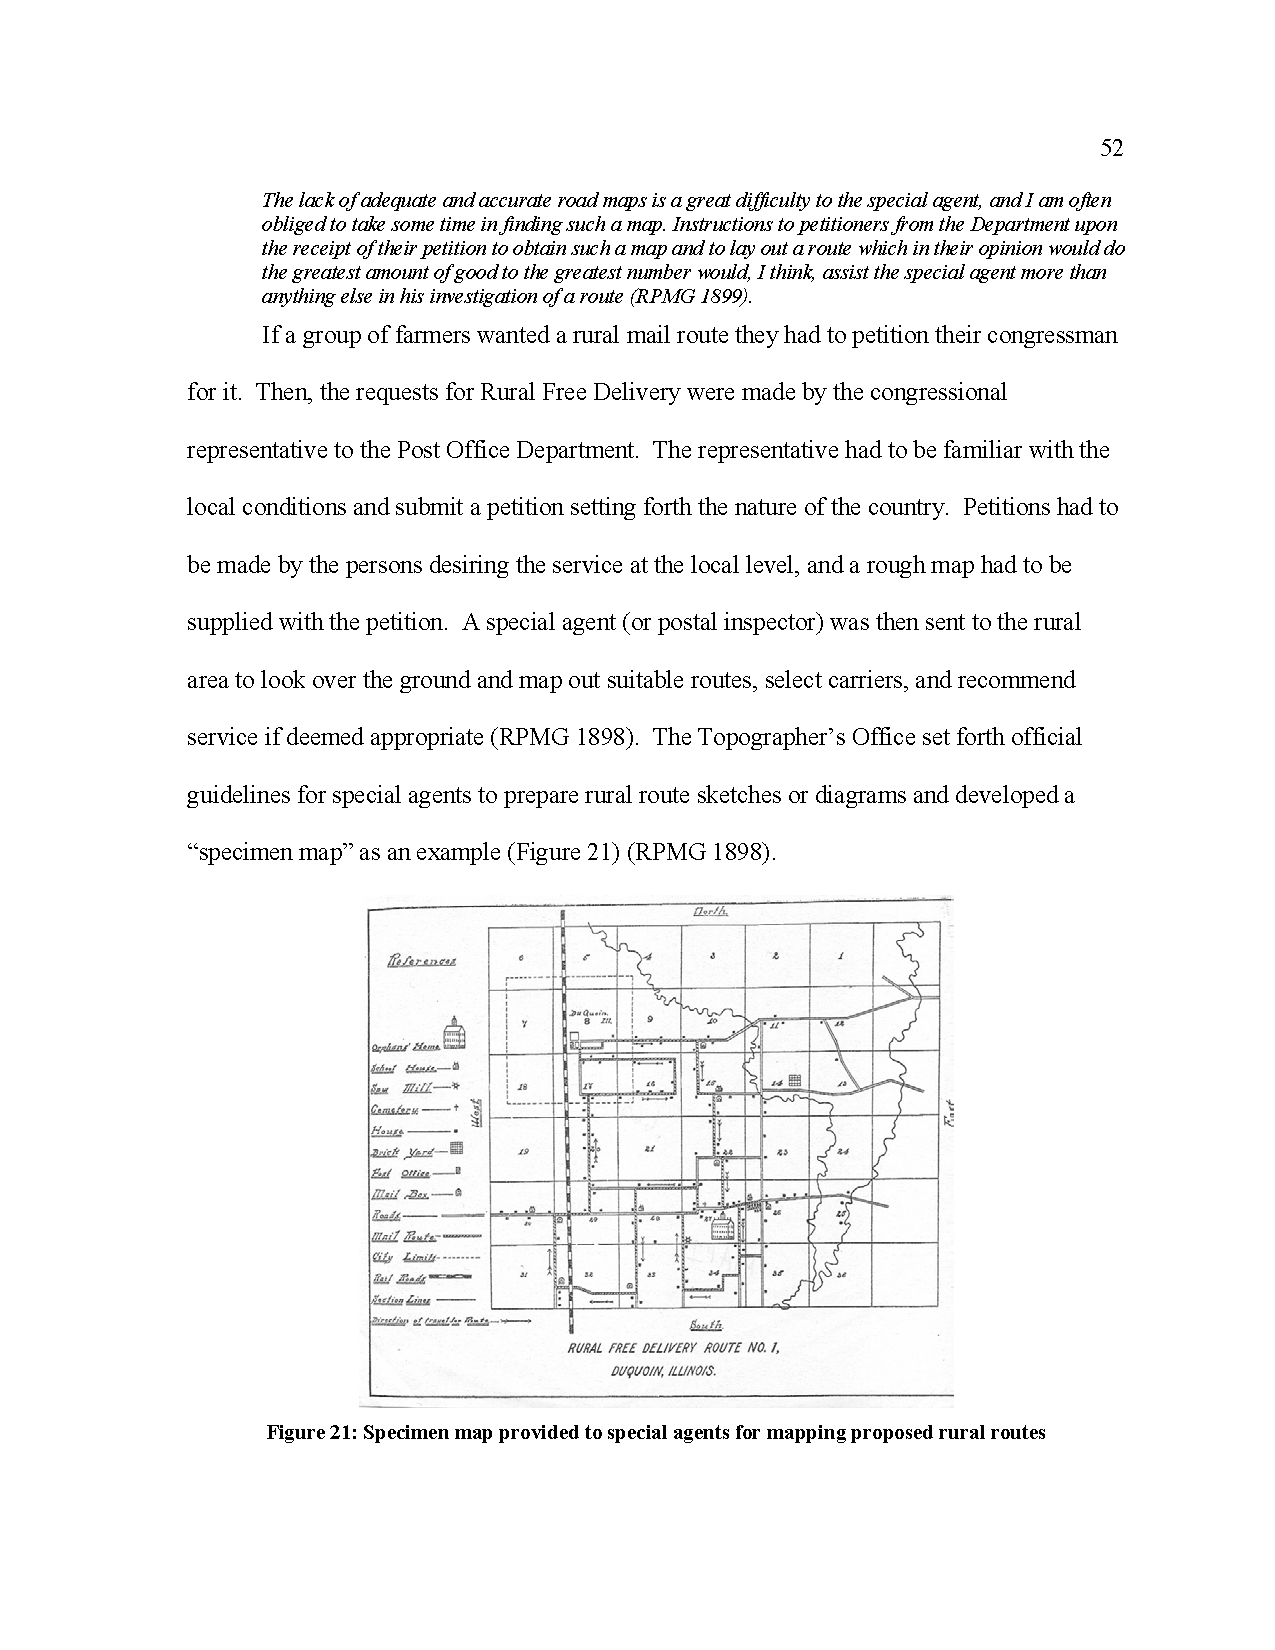 Thesis Final_Page_056.png